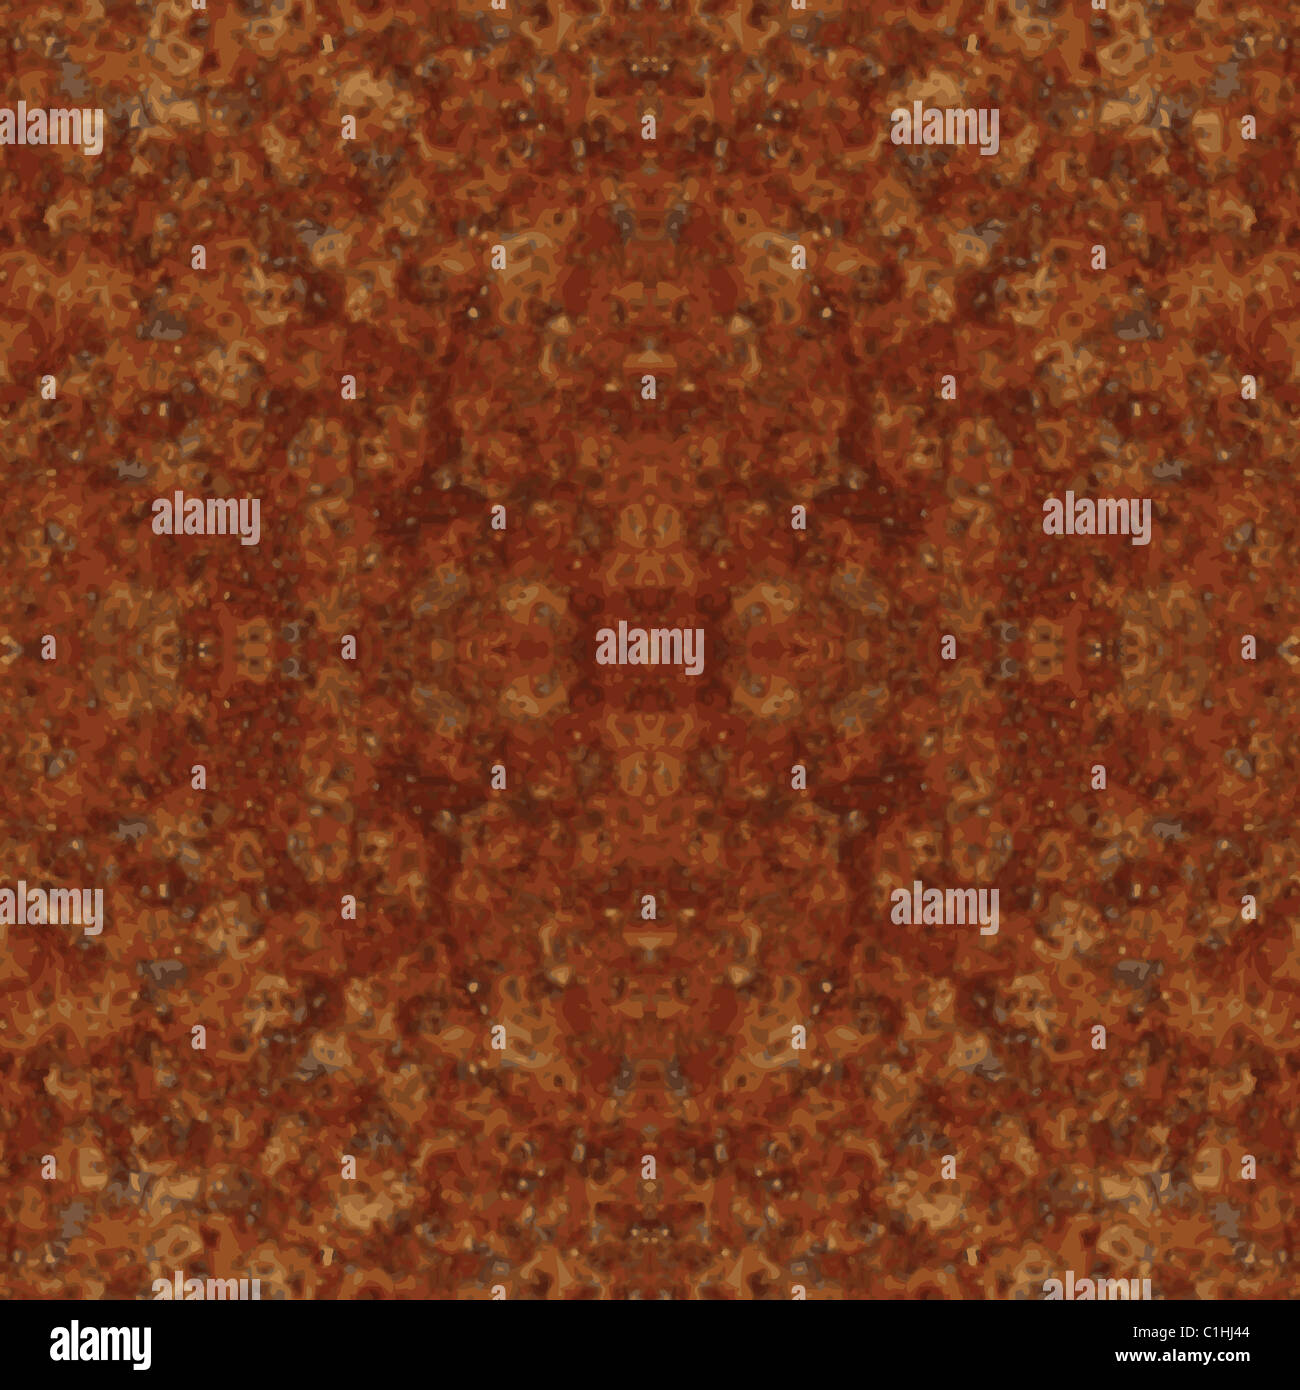 Repeating rust metal texture background - Stock Image